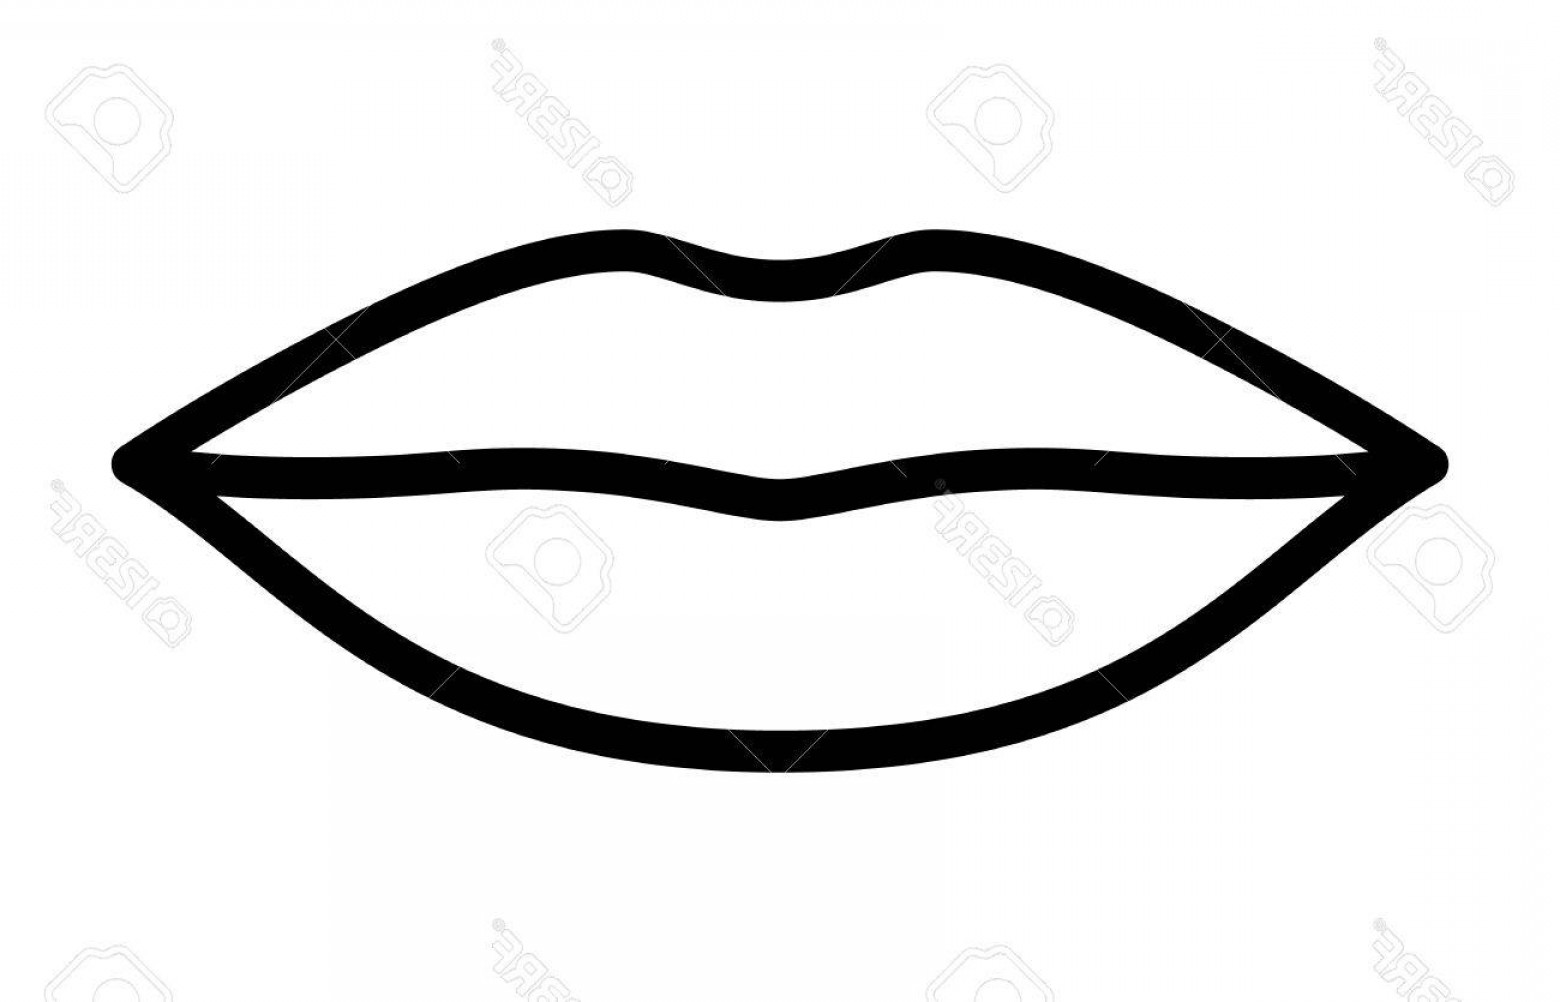 Kiss Clip Art Vector: Photostock Vector Woman S Lips For Kissing Kiss Line Art Vector Icon For Apps And Websites